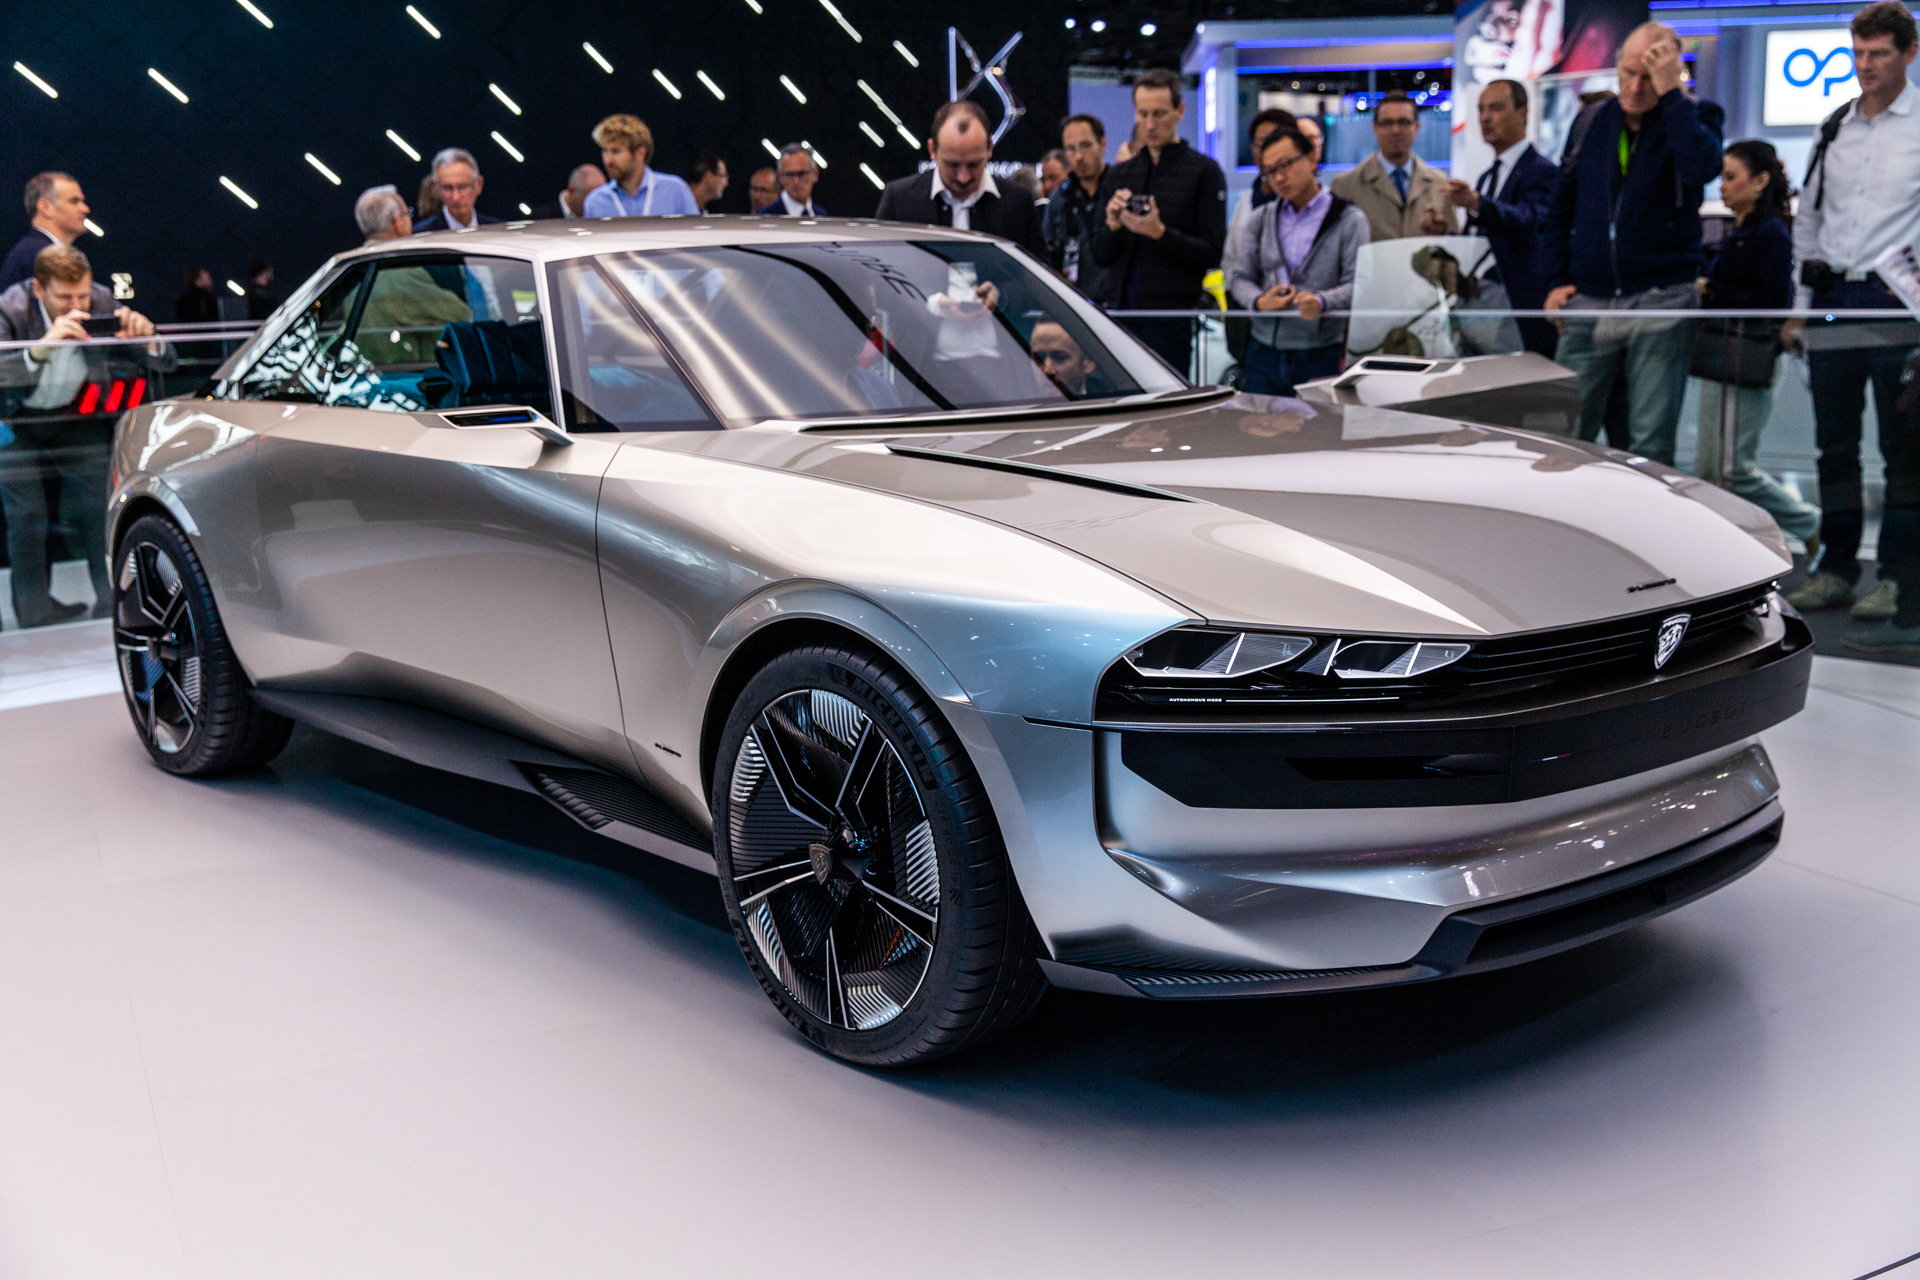 Concept Cars 2019: 10 Things We Learned From The 2018 Paris Auto Show